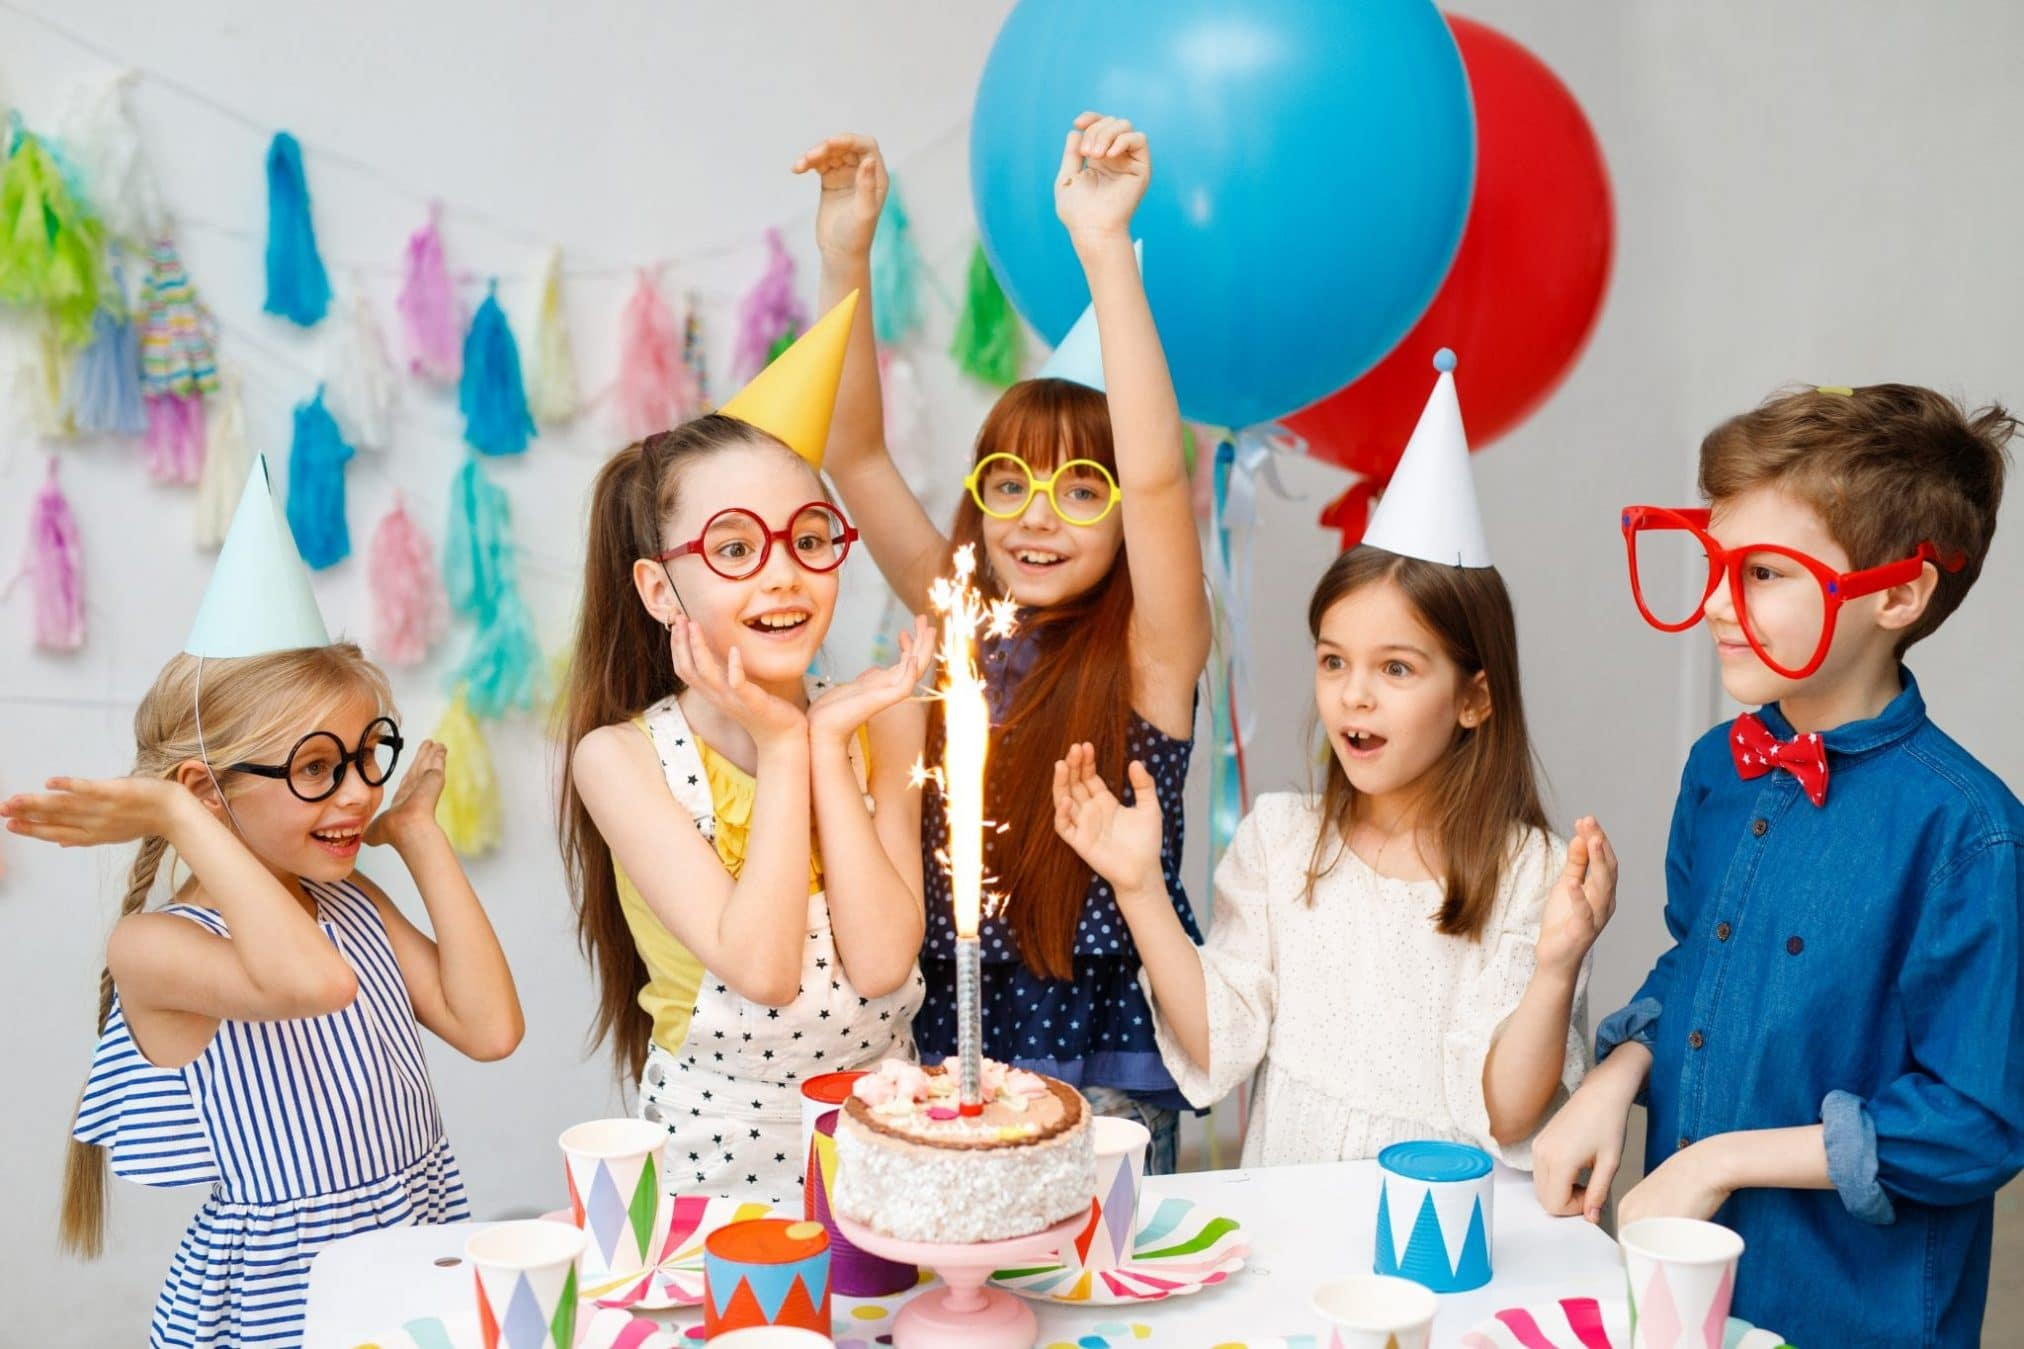 5 Epic Birthday Cakes for Kids